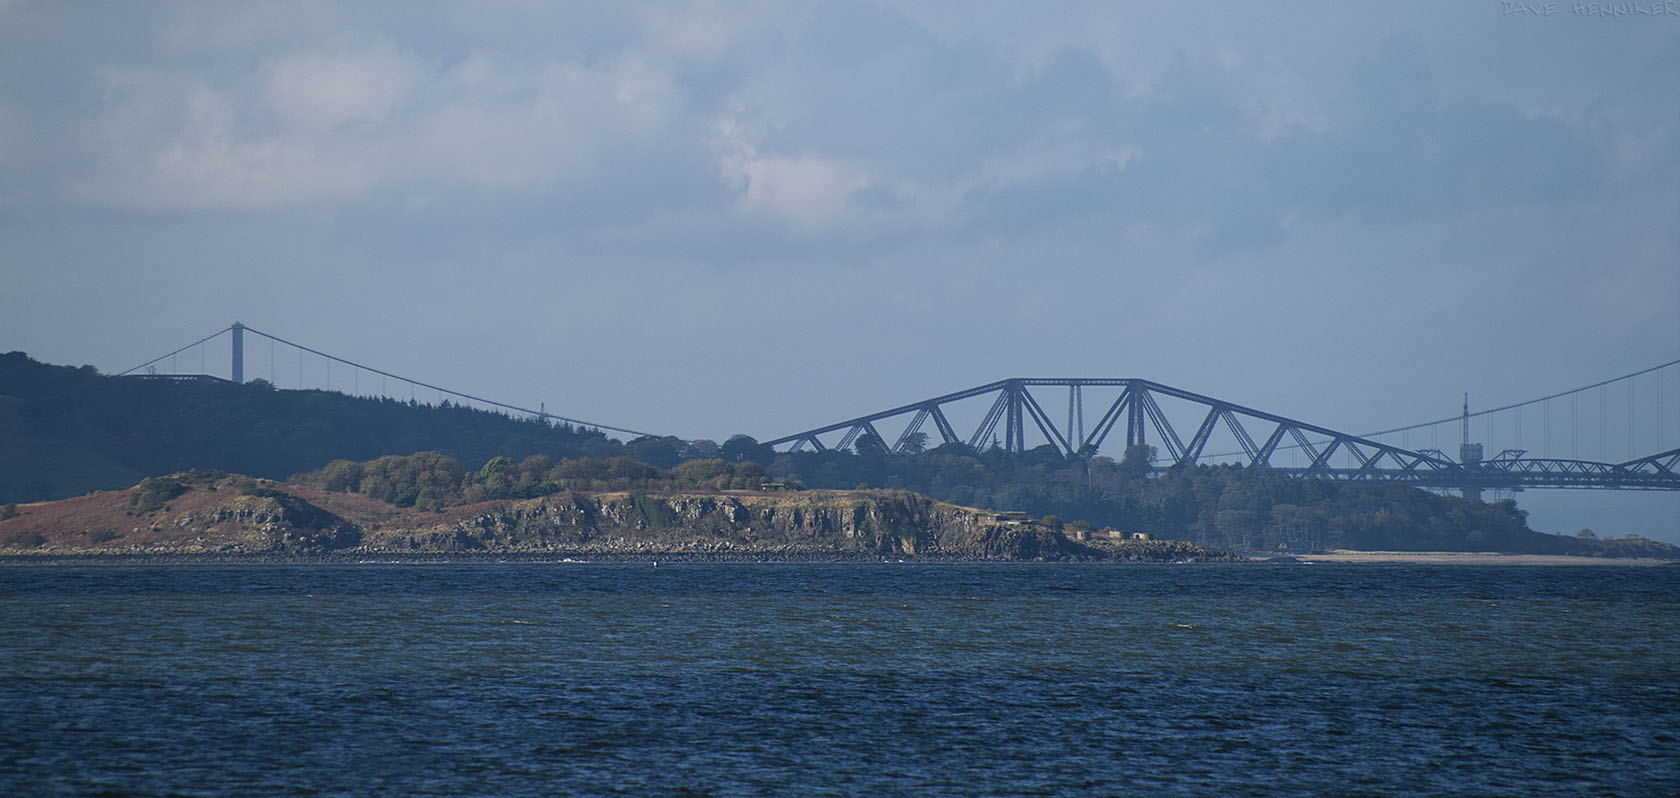 A long lens shot looking west towards Cramond Island and the Forth bridges (two and a bit). (Cramond Island is 4 miles away and the Forth Bridge is 8 miles away.)